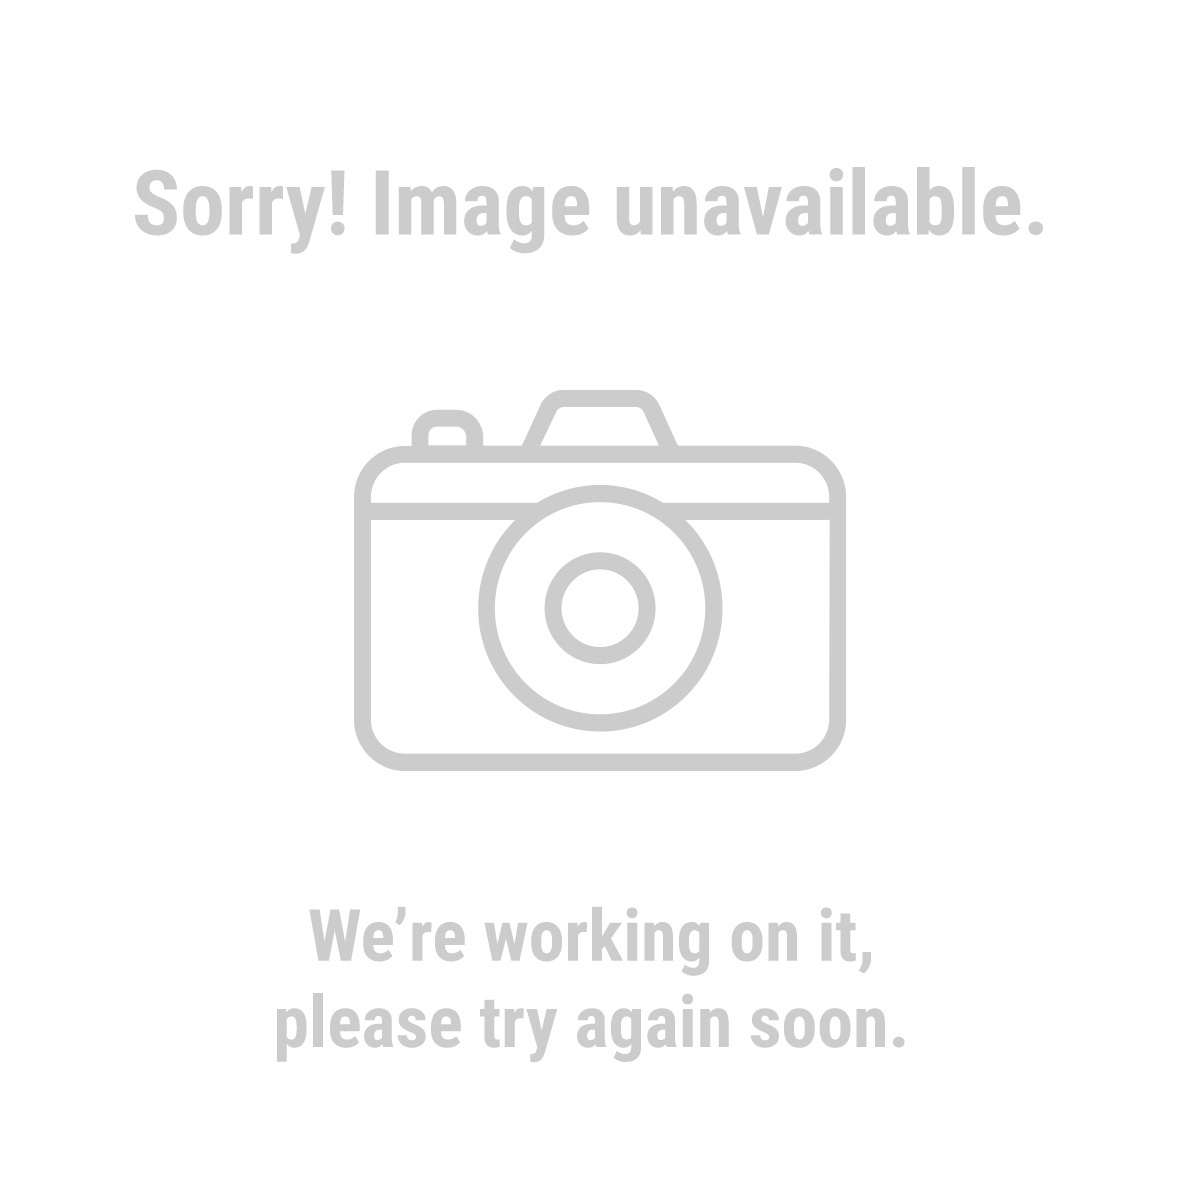 Chicago Electric Welding 68887 90 Amp Flux Wire Welder